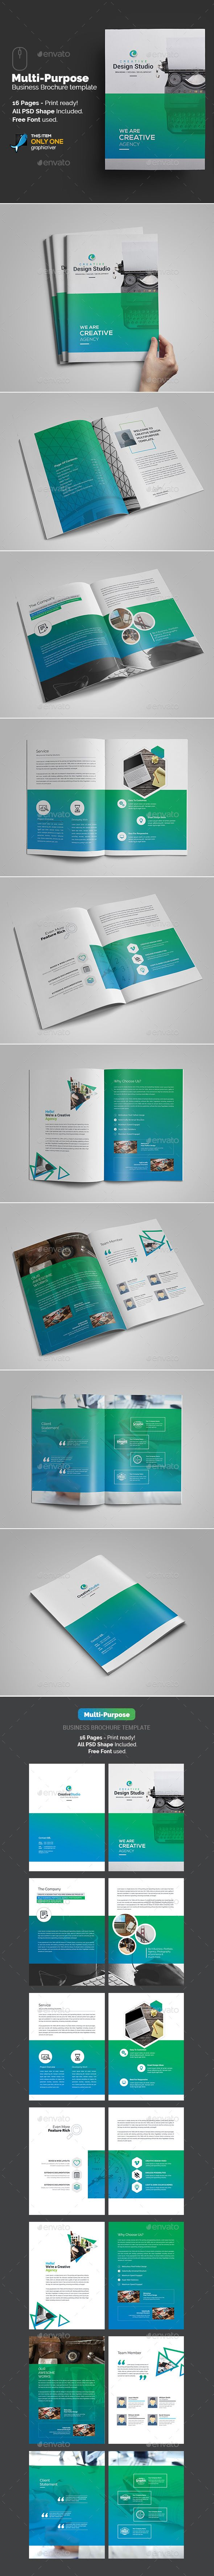 Multi-Purpose Agency Brochure #Template - #Brochures Print Templates Download here: https://graphicriver.net/item/multipurpose-agency-brochure-template/18725980?ref=alena994